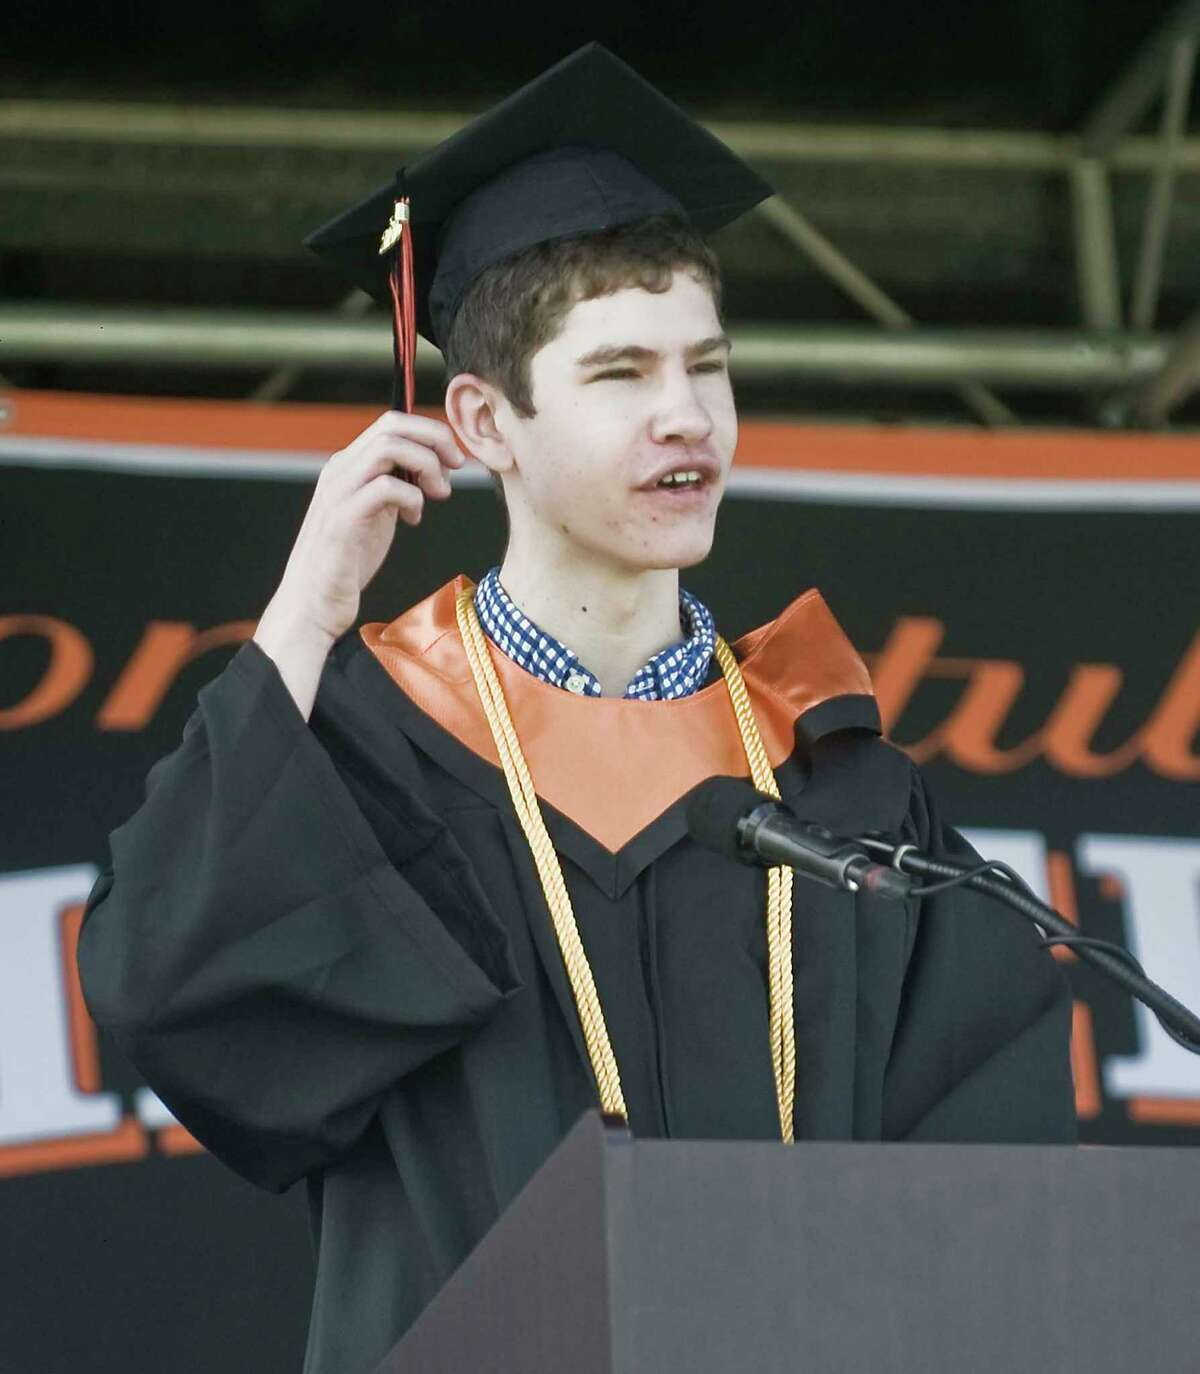 Ridgefield High School Valedictorian, Questin McQuilkin, speaks to the students during the graduation ceremony held on the school grounds. Thursday, June 18, 2020